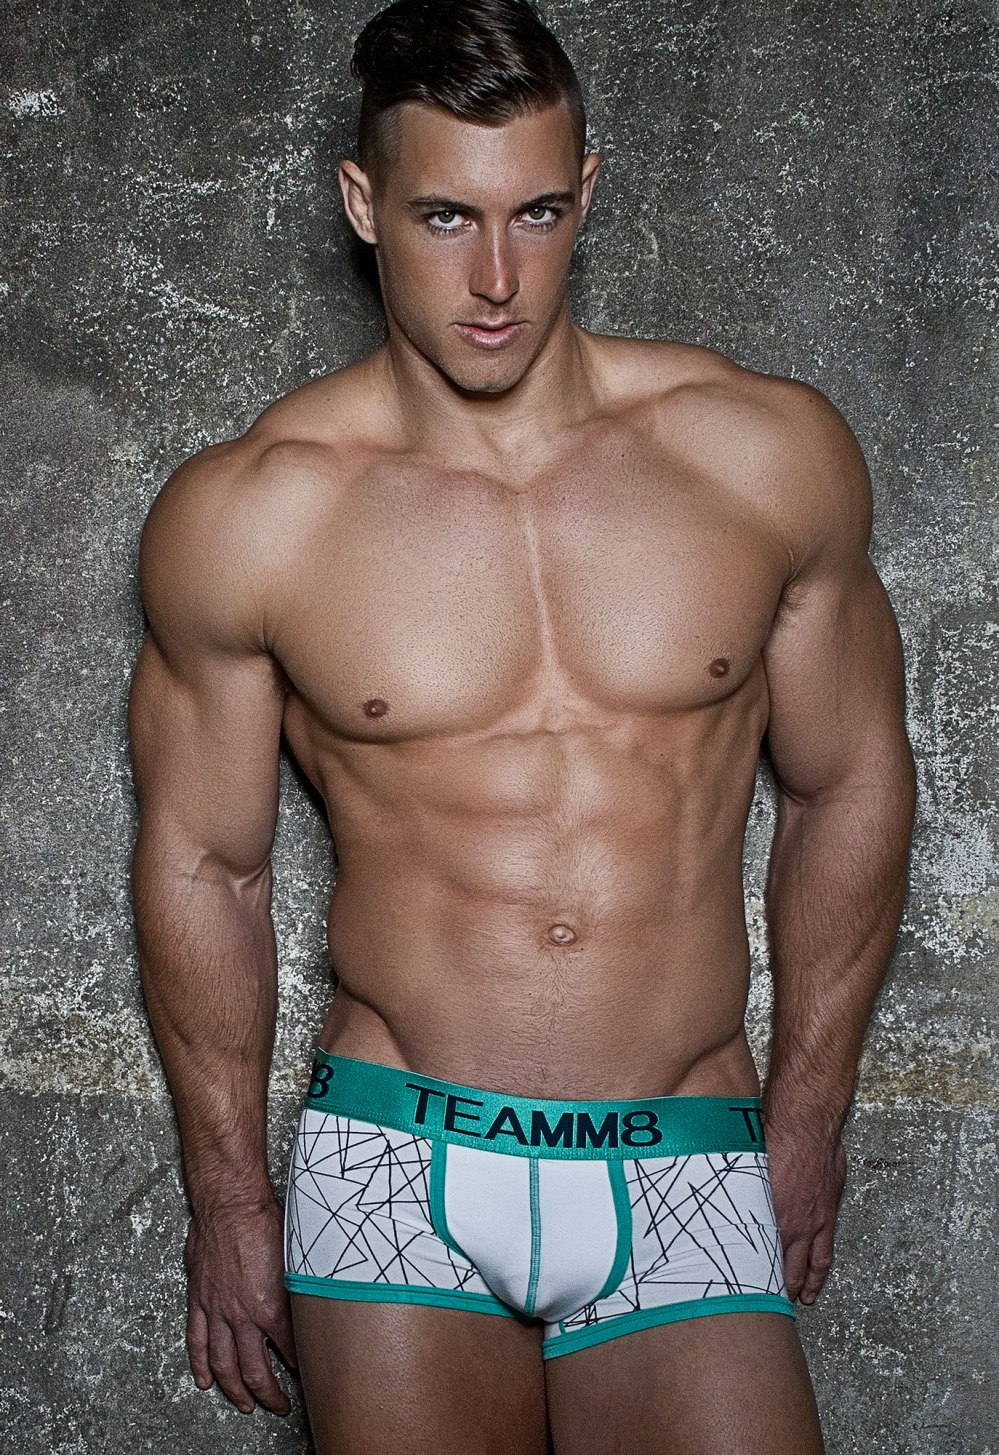 Kayne Lawton for Teamm8 1